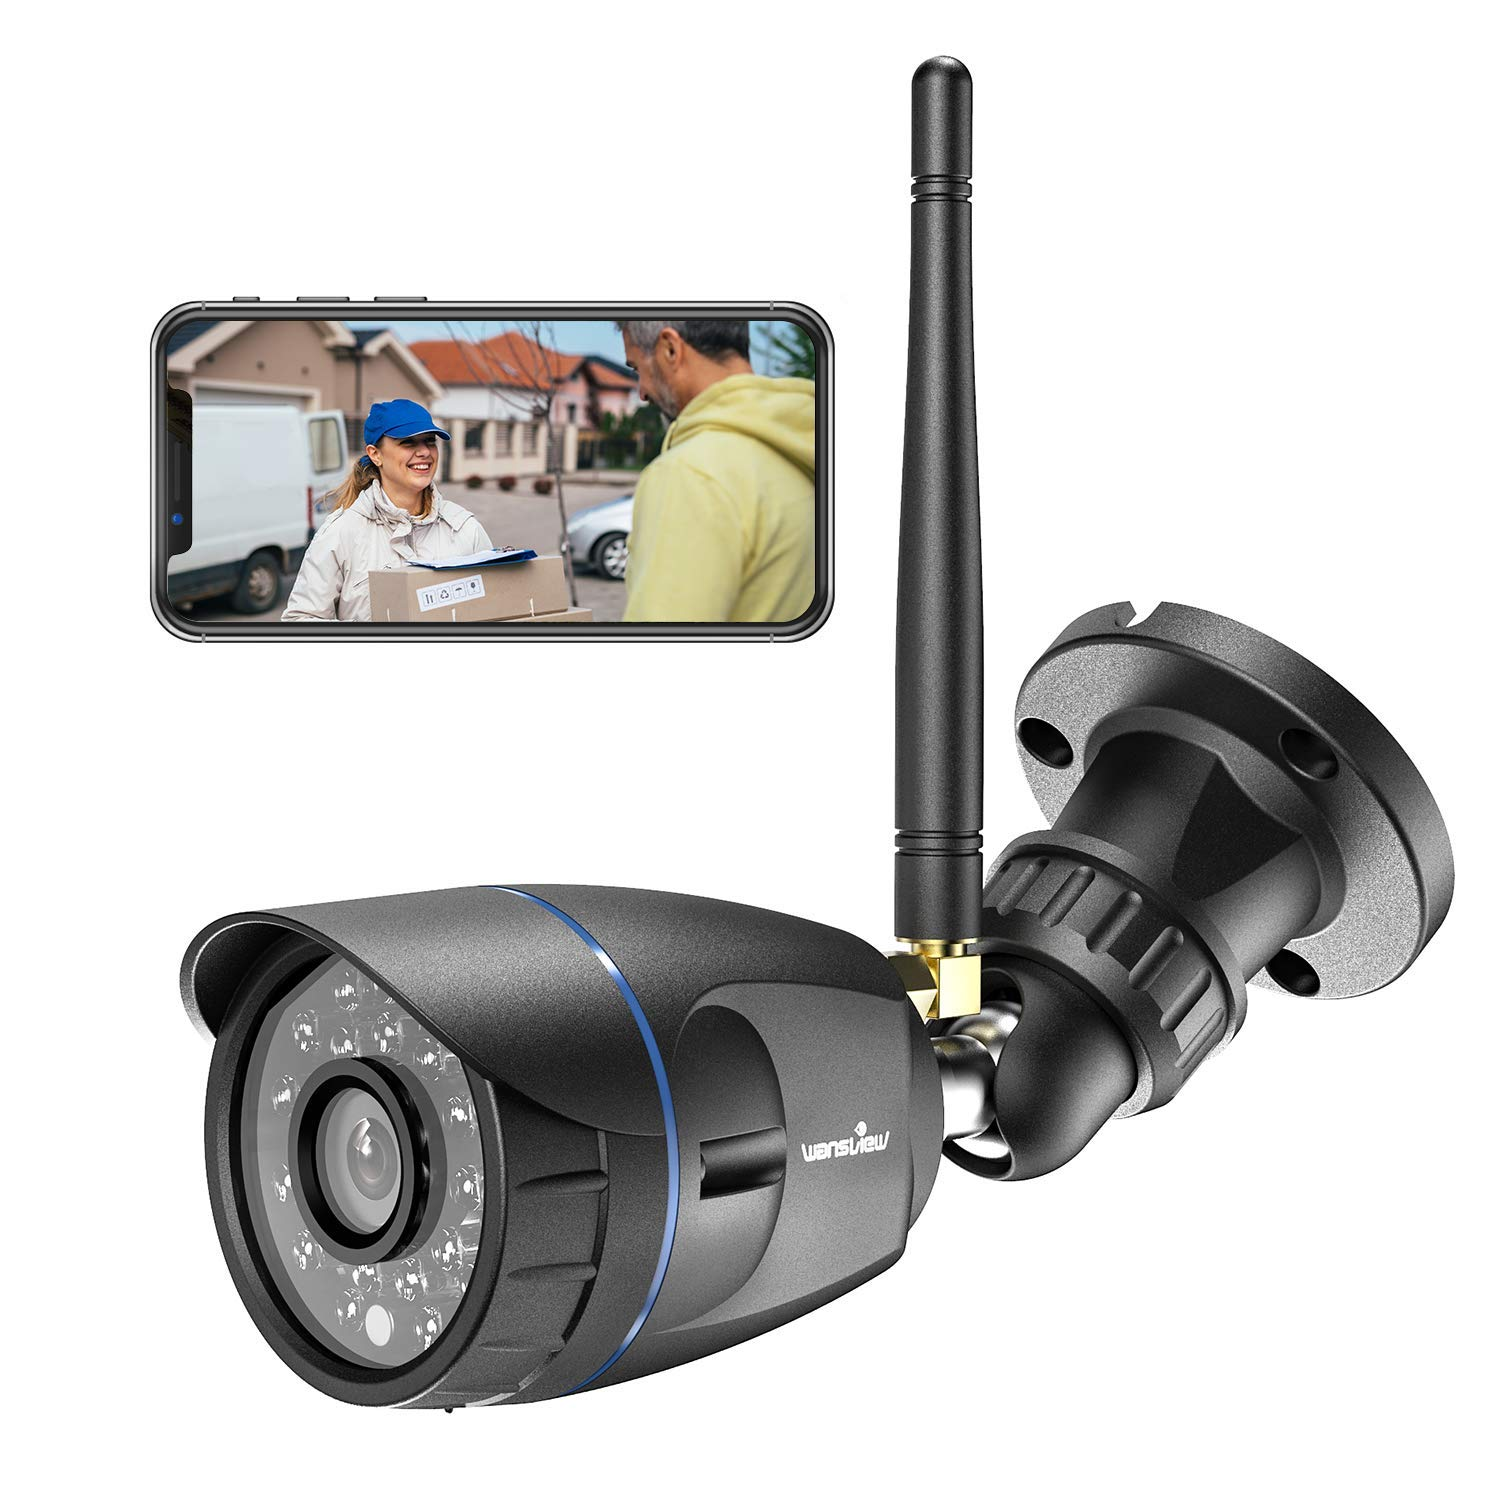 Outdoor Security Camera, Wansview 1080P Wireless WiFi Home Surveillance Waterproof Camera with Night Vision, Motion Detection, Remote Access, Compatible with Alexa-W4-Black